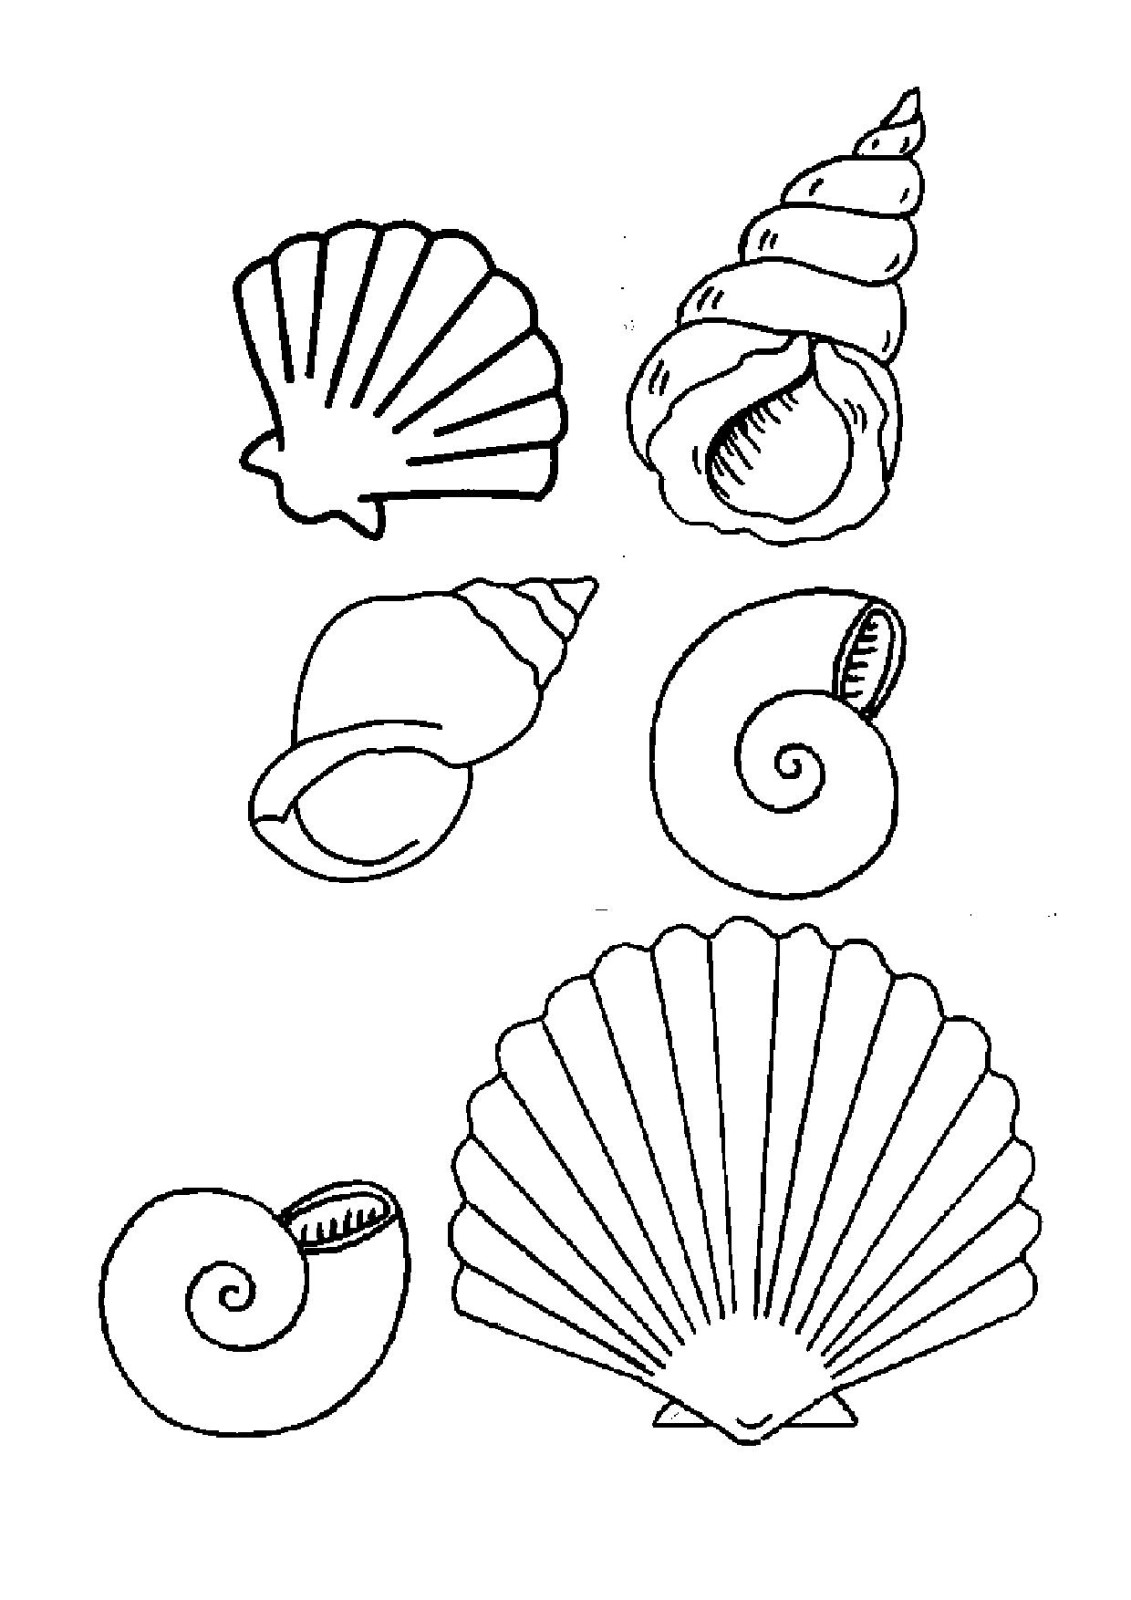 19 dessins de coloriage coquillage de mer imprimer - Coloriage de coquillage ...